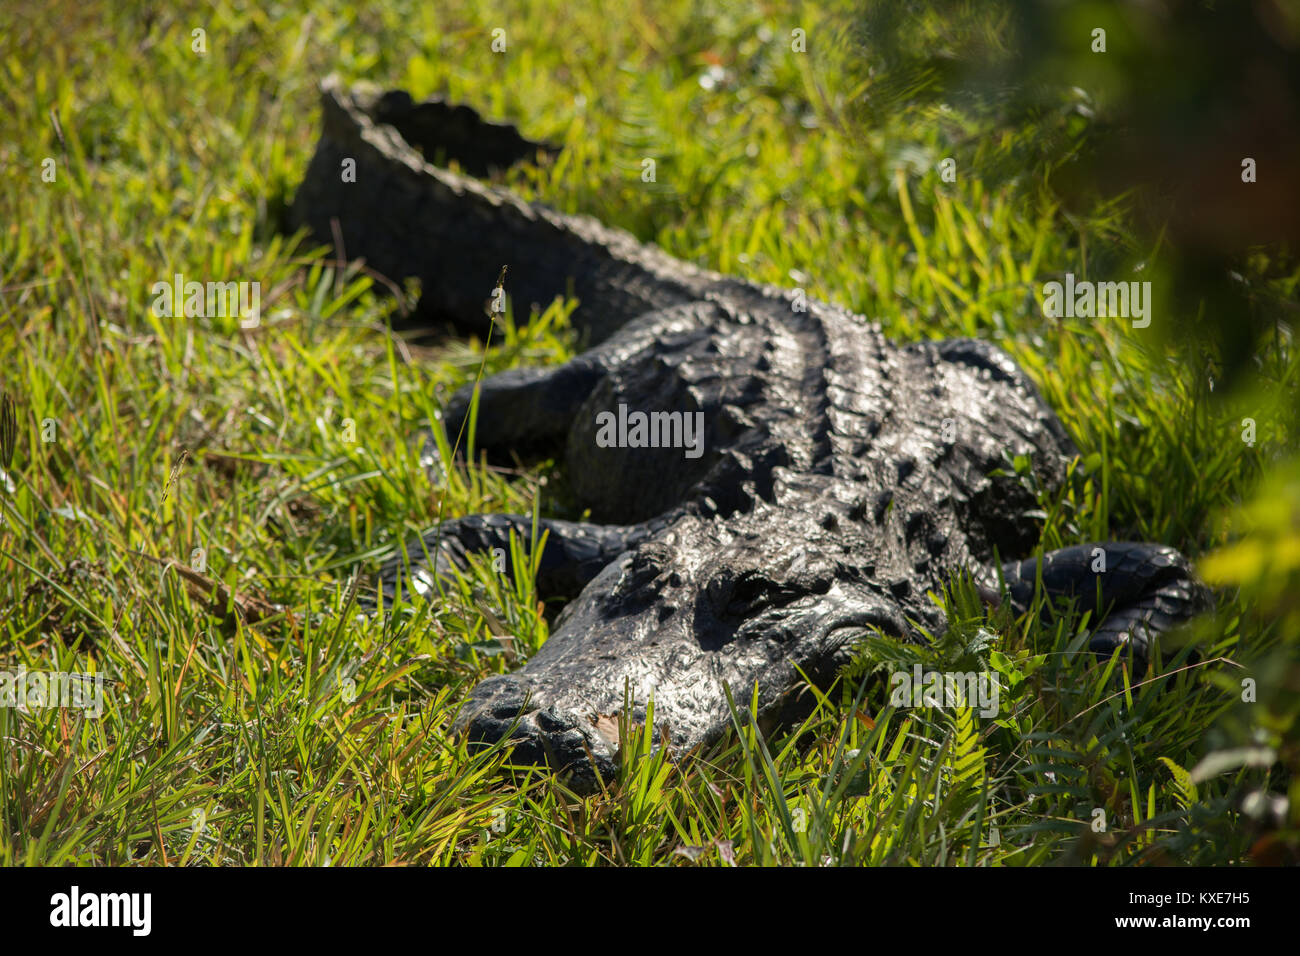 American Alligator (Alligator mississippiensis) from Miami-Dade County, Florida, USA. - Stock Image